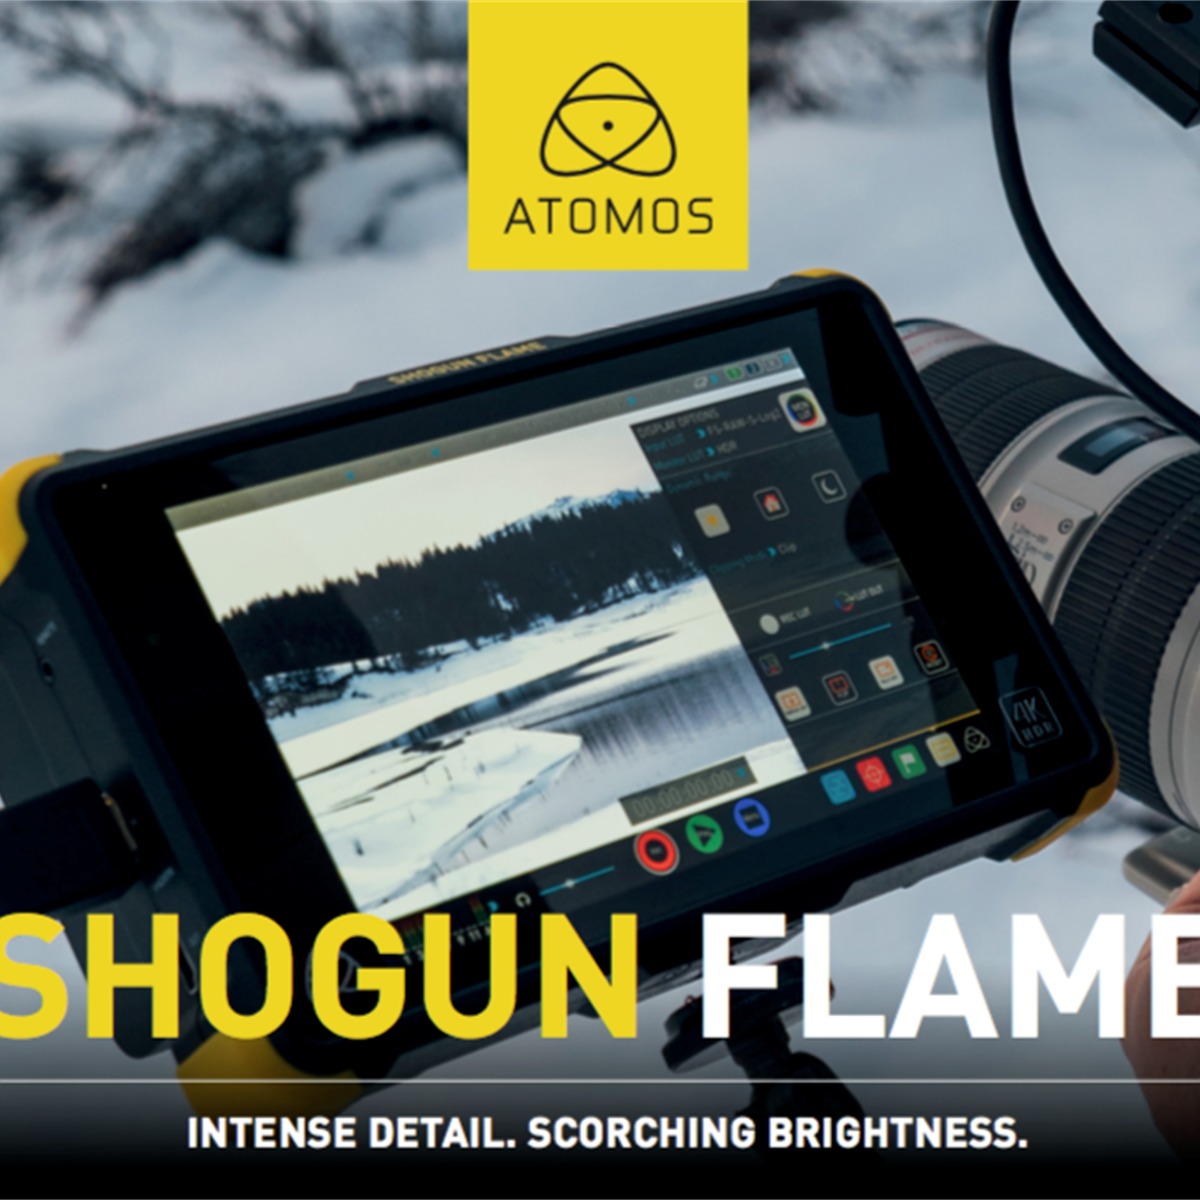 Atomos Releases New Flame Versions Of Shogun And Ninja Recorders 10 Sp Digital Photography Review